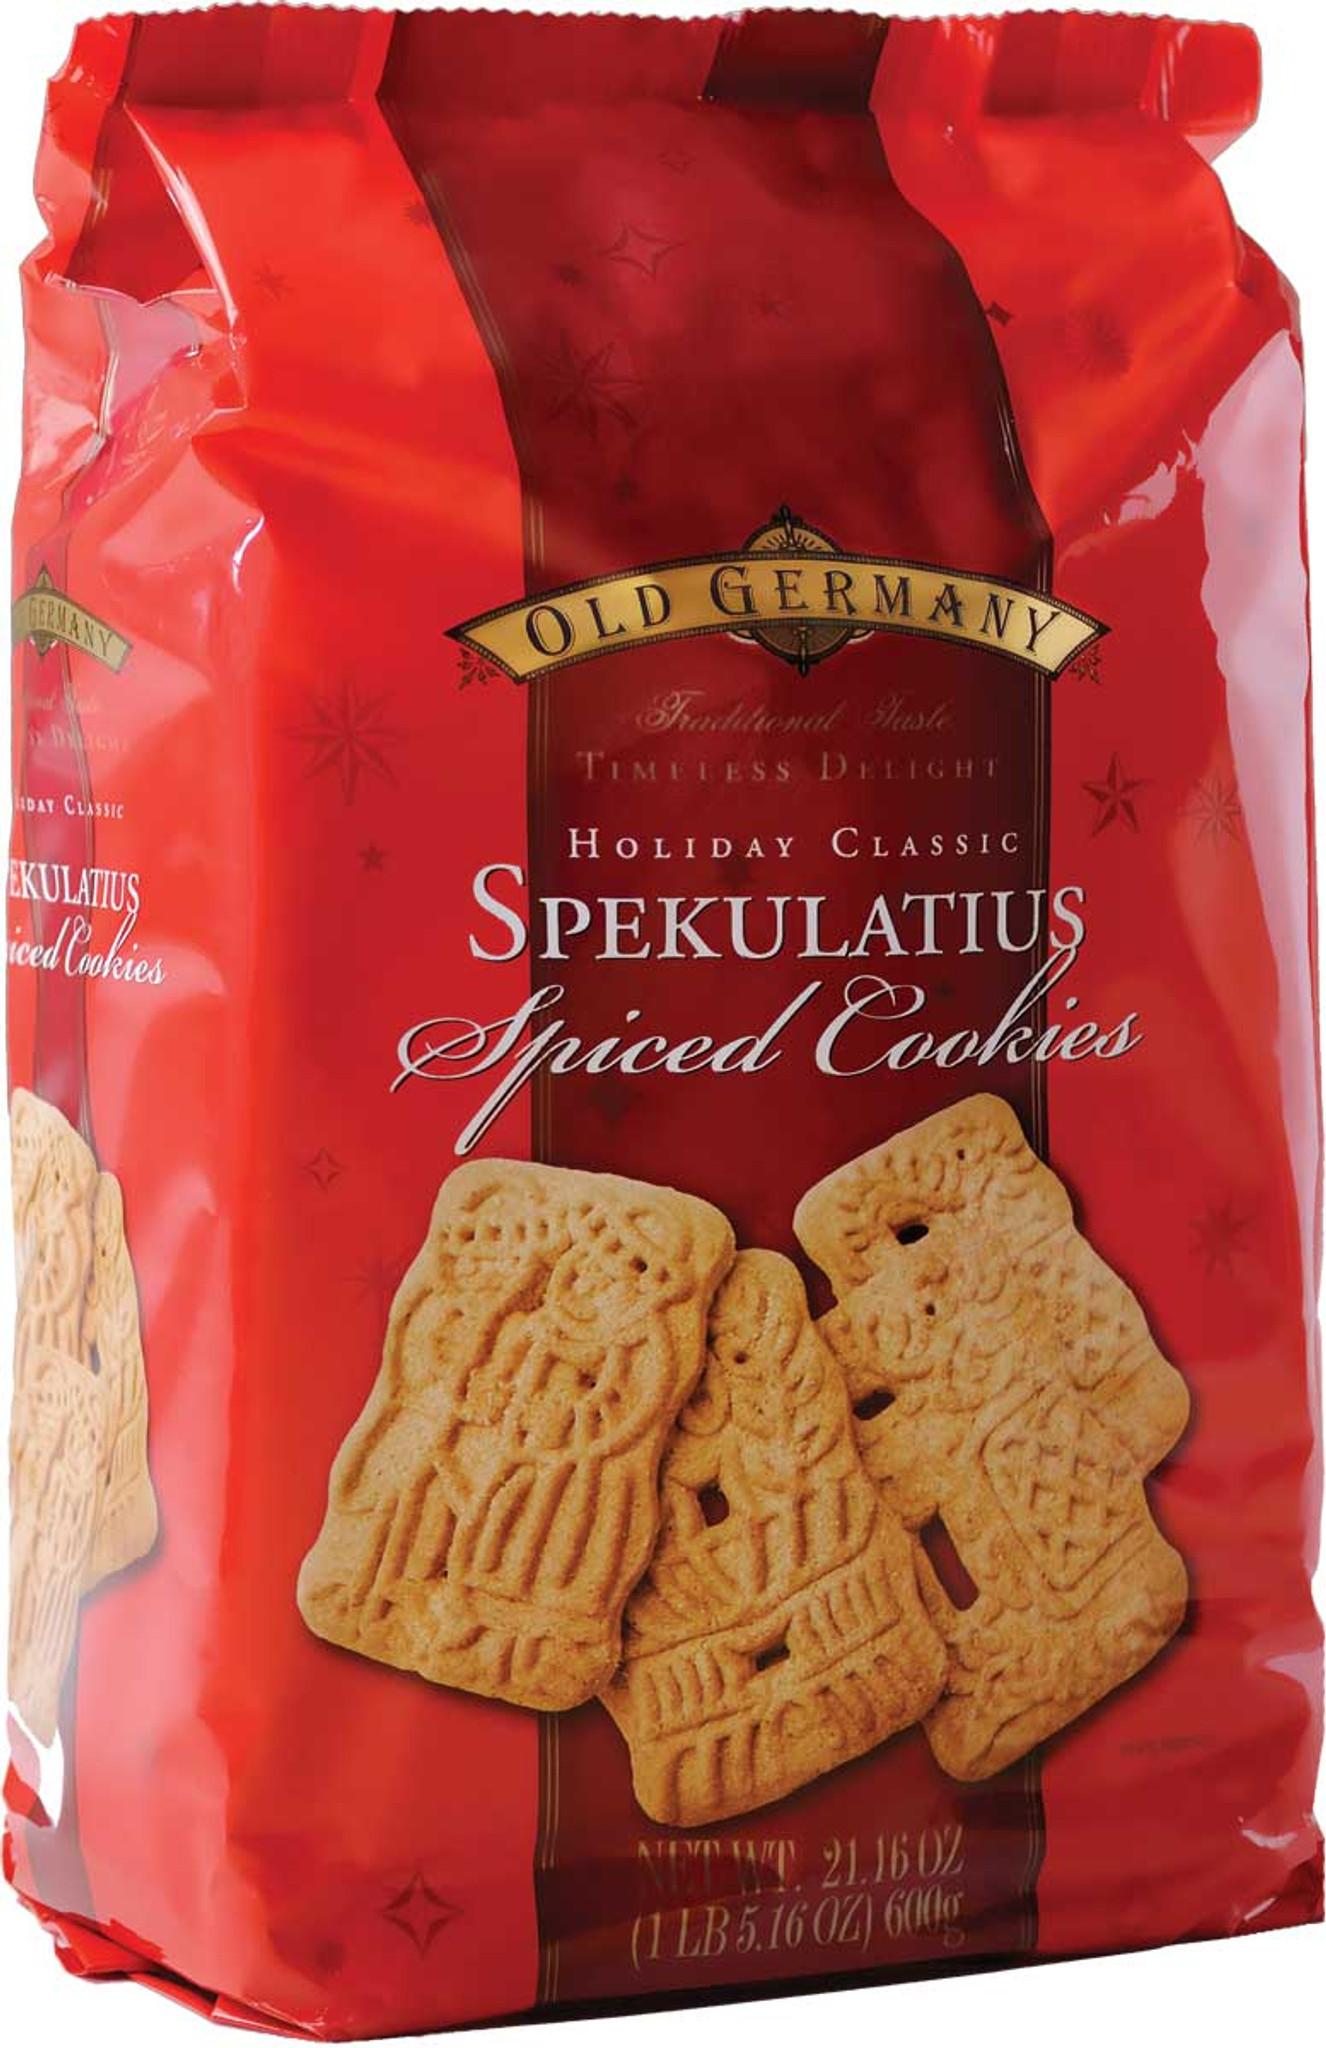 Pertzborn Spekulatius Spiced Cookies Red Cello